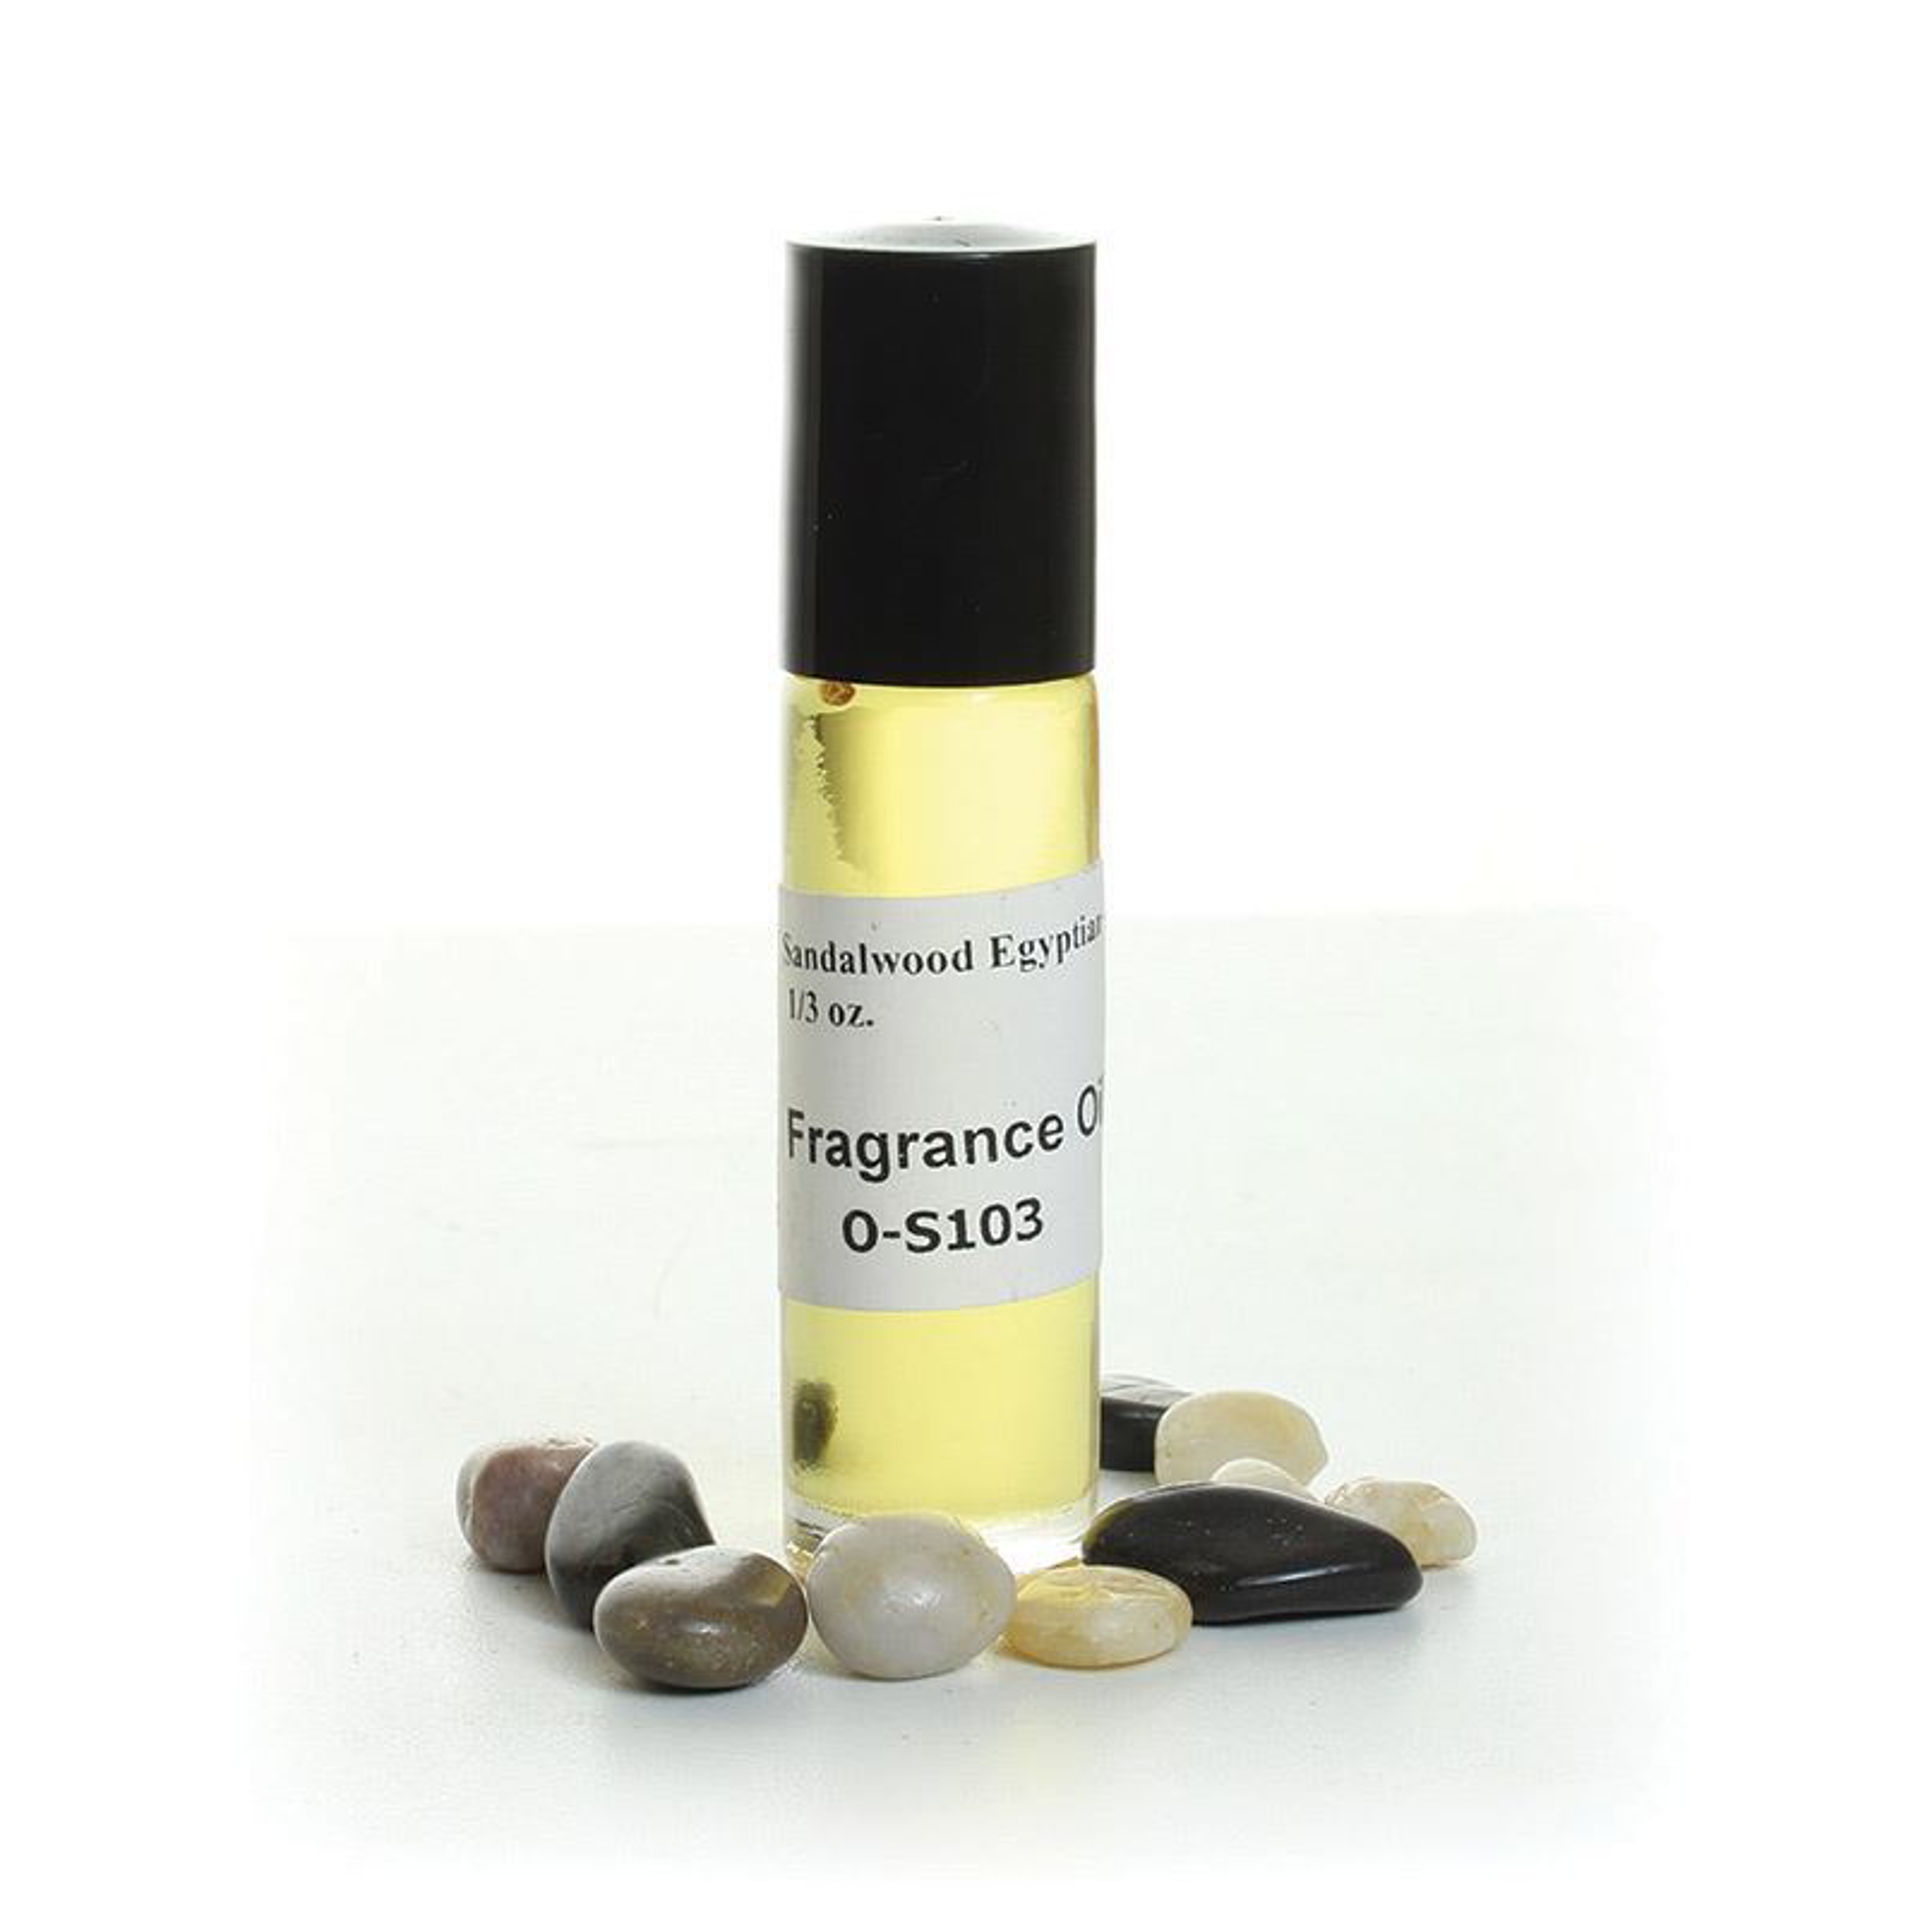 Picture of Sandalwood Egyptian - 1/3 oz.